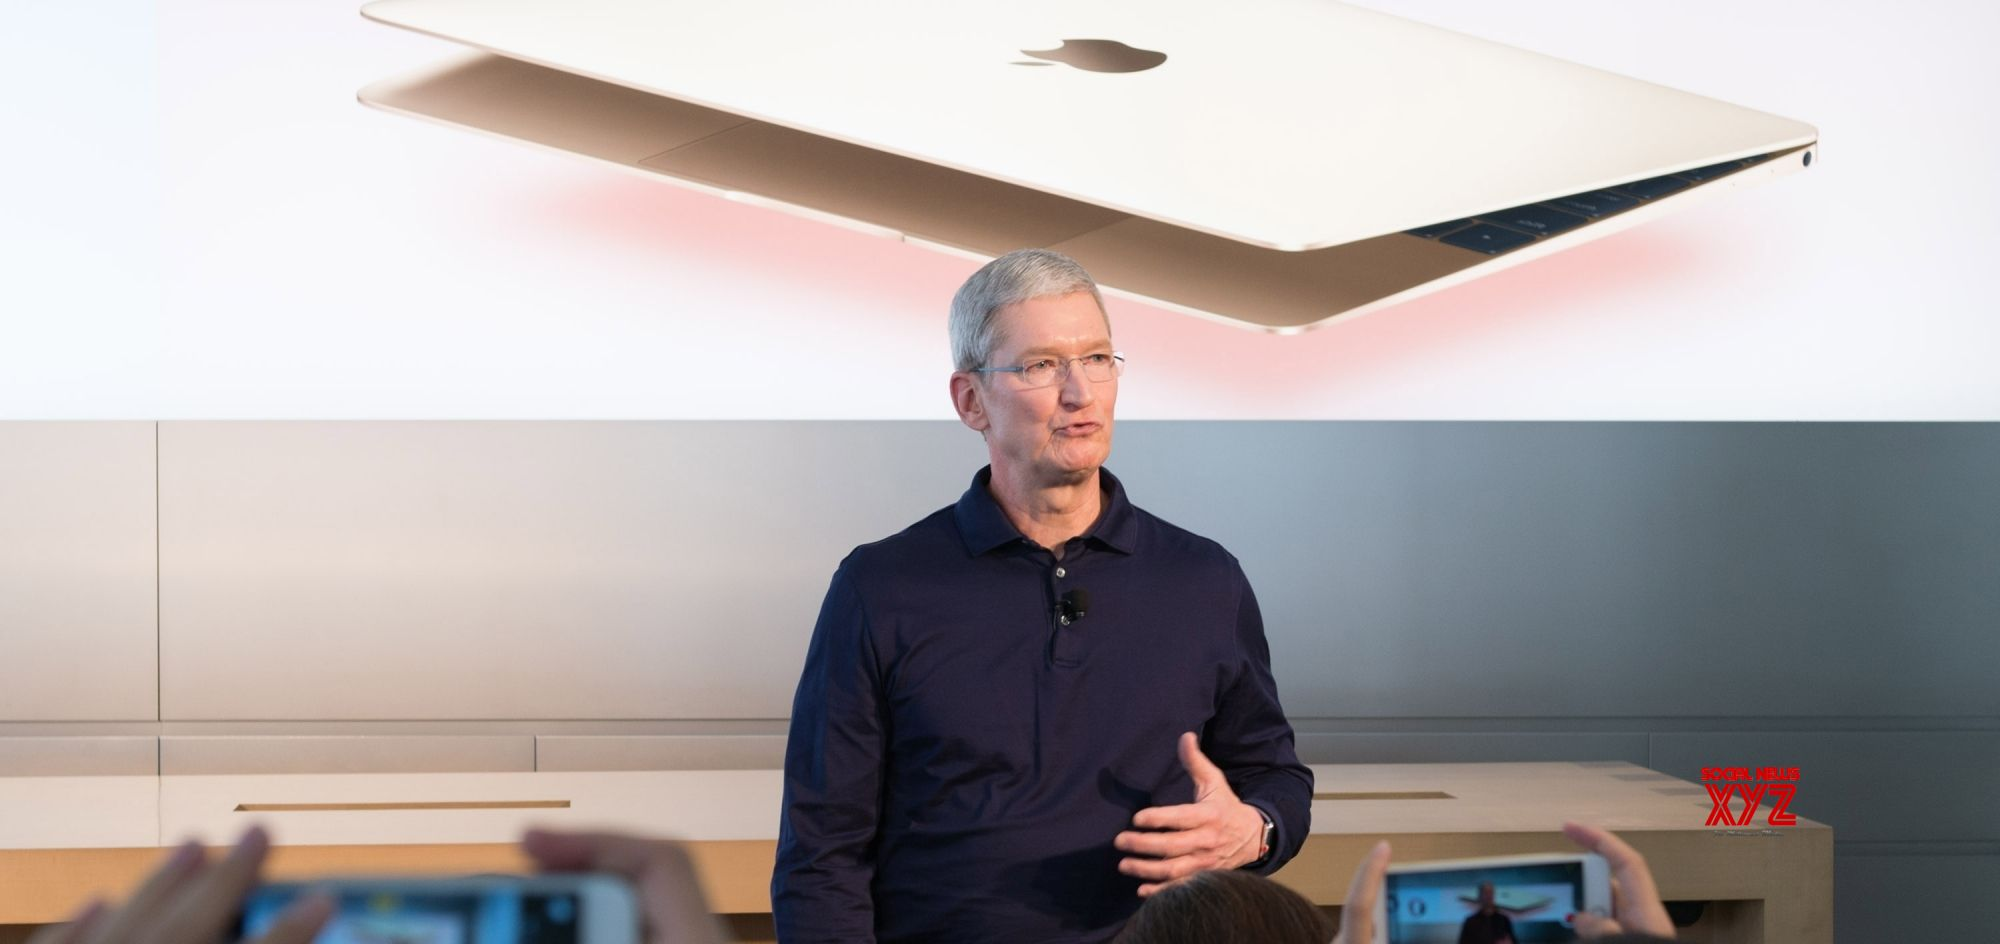 Apple CEO visits White House, meets Trump: Report